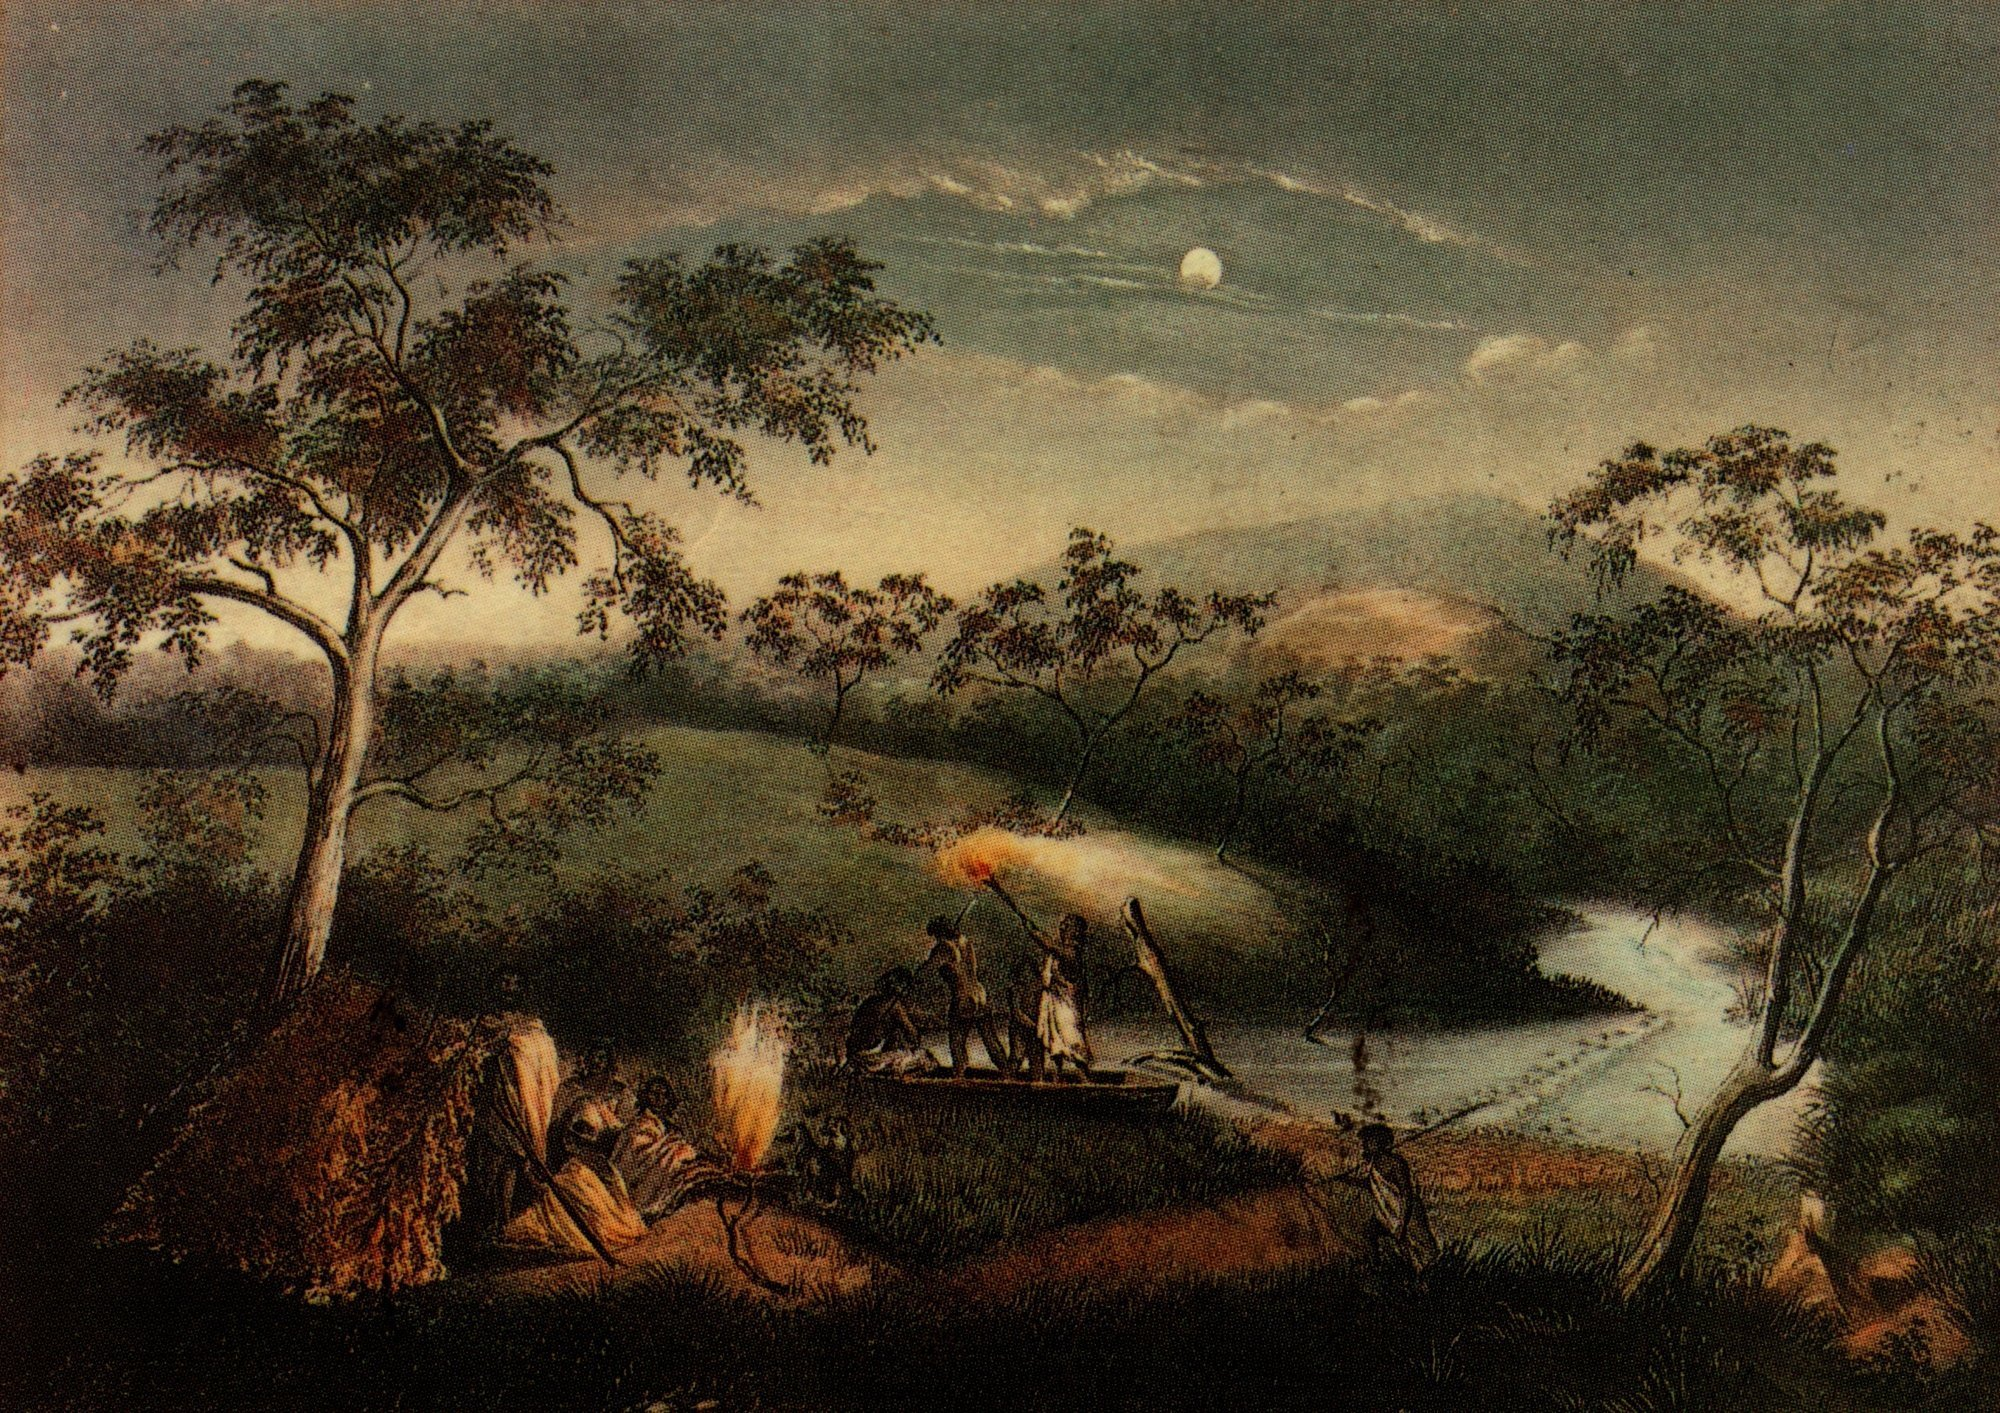 Aboriginal people fishing and camping on Merri Creek, by Charles Troedel, 1864 - Souvenir Views of Melbourne and Victorian Scenery, Melbourne, 1865.  Credit State Library of Victoria.  The Wurundjeri are an Aboriginal Australian nation of the Woiwurrung language group, in the Kulin alliance. They occupied the Birrarung (Yarra River) Valley before British colonisation and managed lands extending over approximately 12,000 square kilometres, including what is now known as Arthurs Creek.  One of the early settlers, Captain Harrison, remembered his sister Kate being saved from drowning by some Wurundjeri women.  Walter Thomas at the Bridge Inn, Mernda, said they had taught him to swim